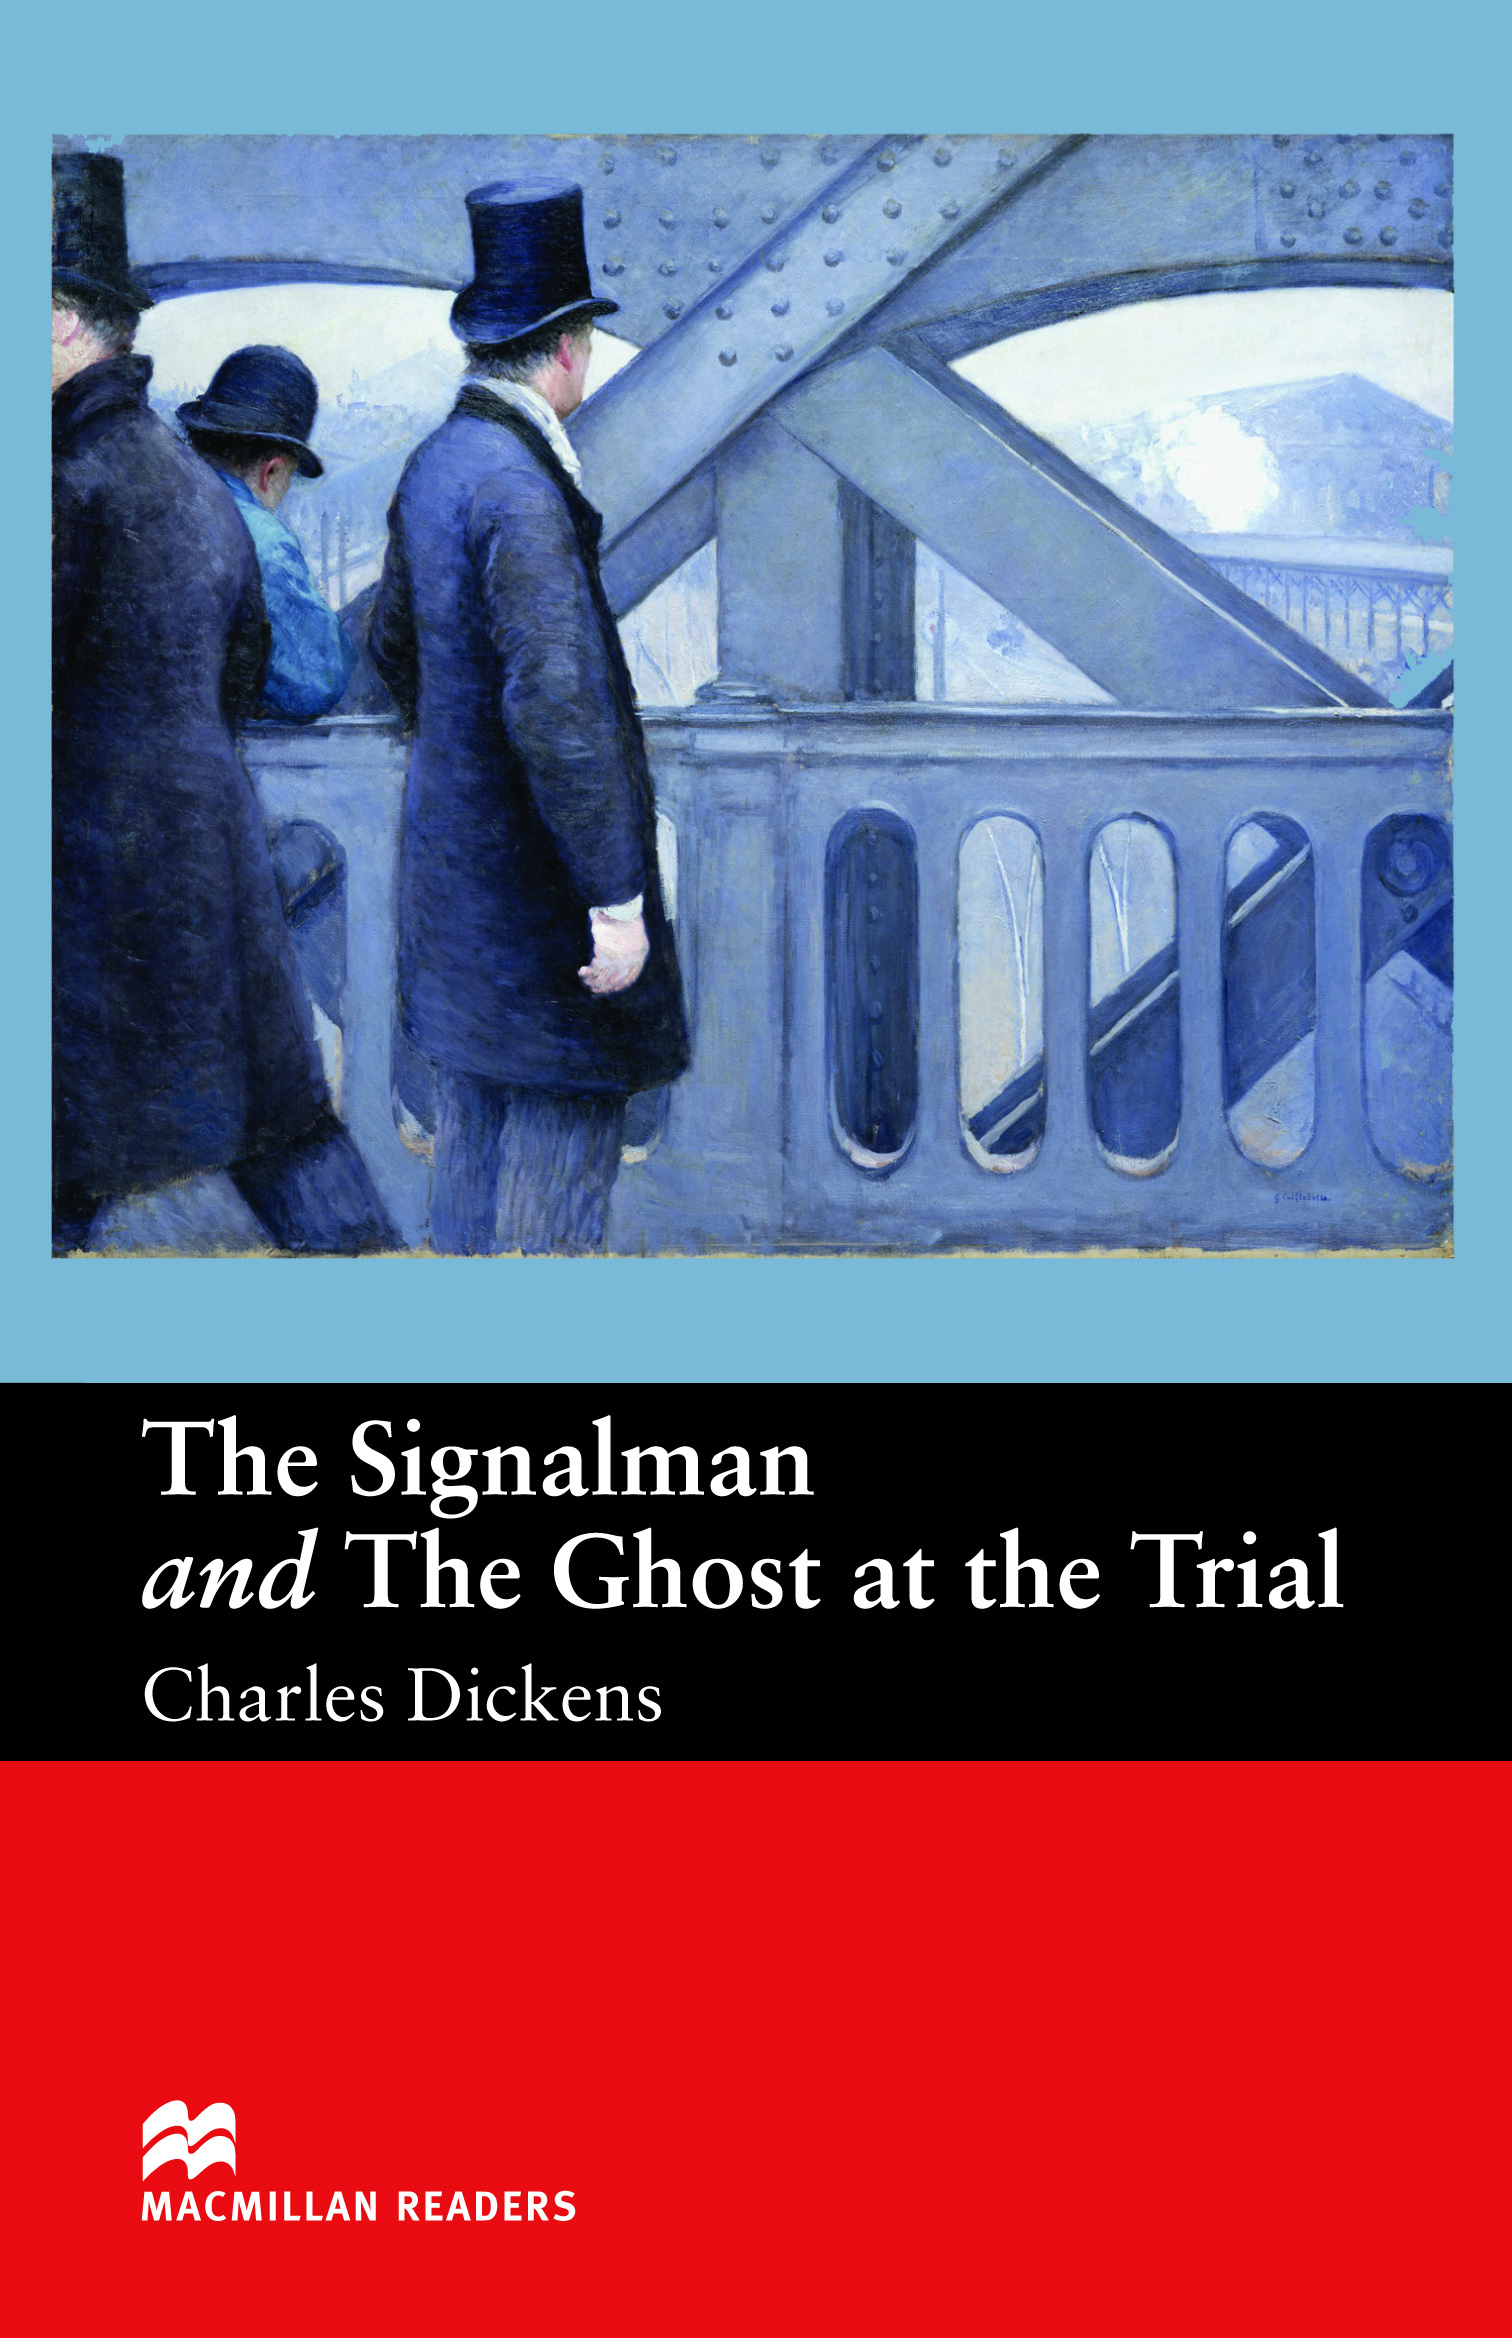 Macmillan Readers: The Signalman and The Ghost at The Trial